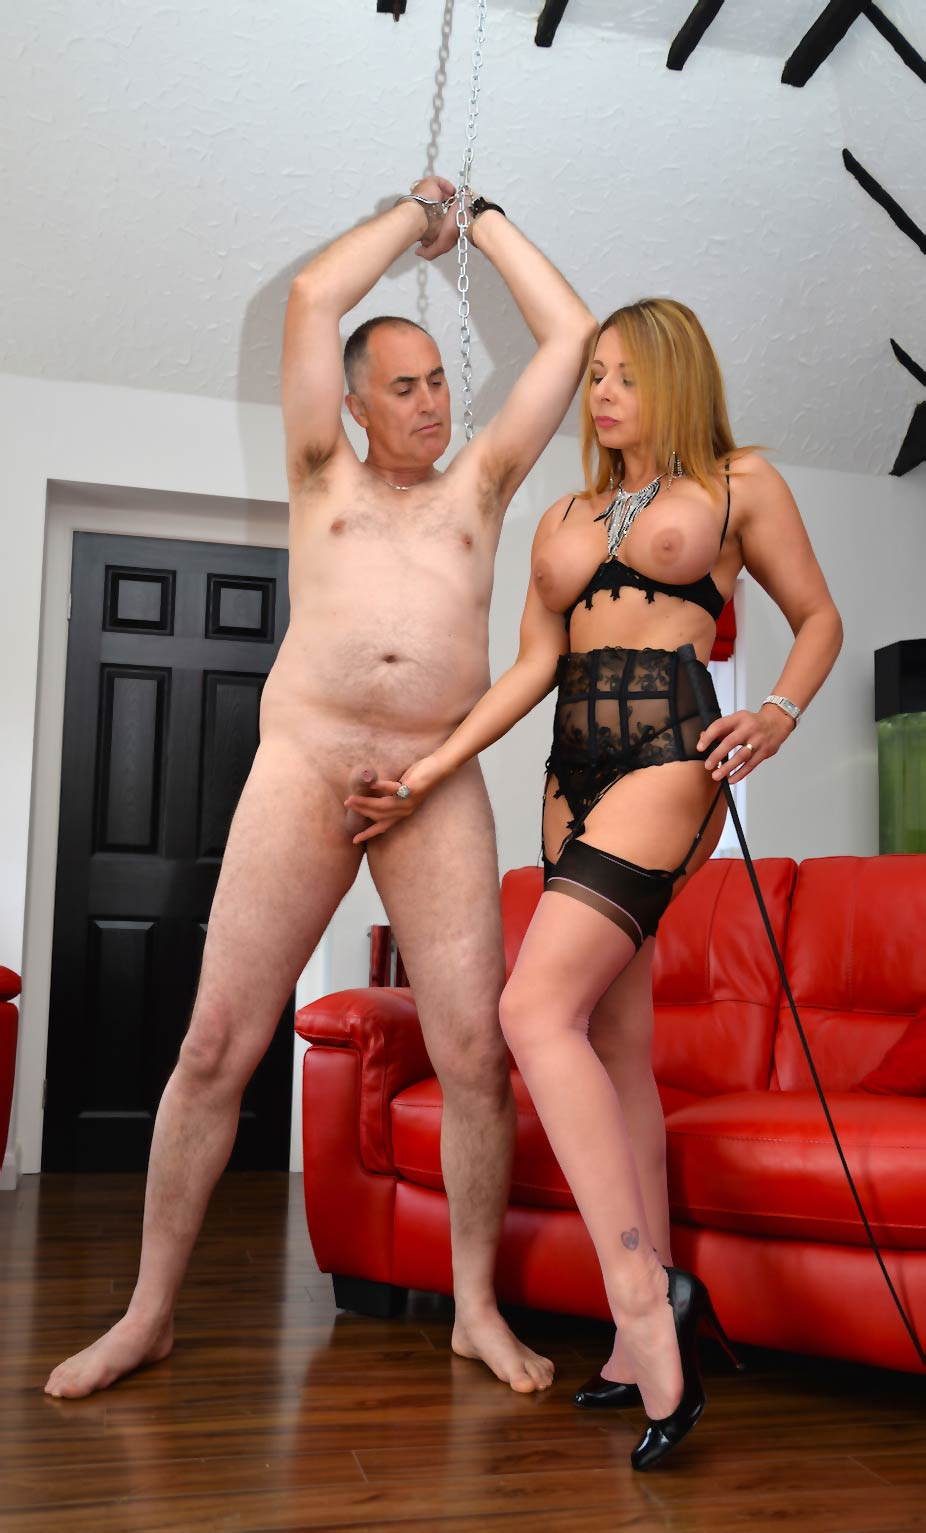 Ball Busting with Mistress Carly. UK Dominatrix located in Ashford, Kent.